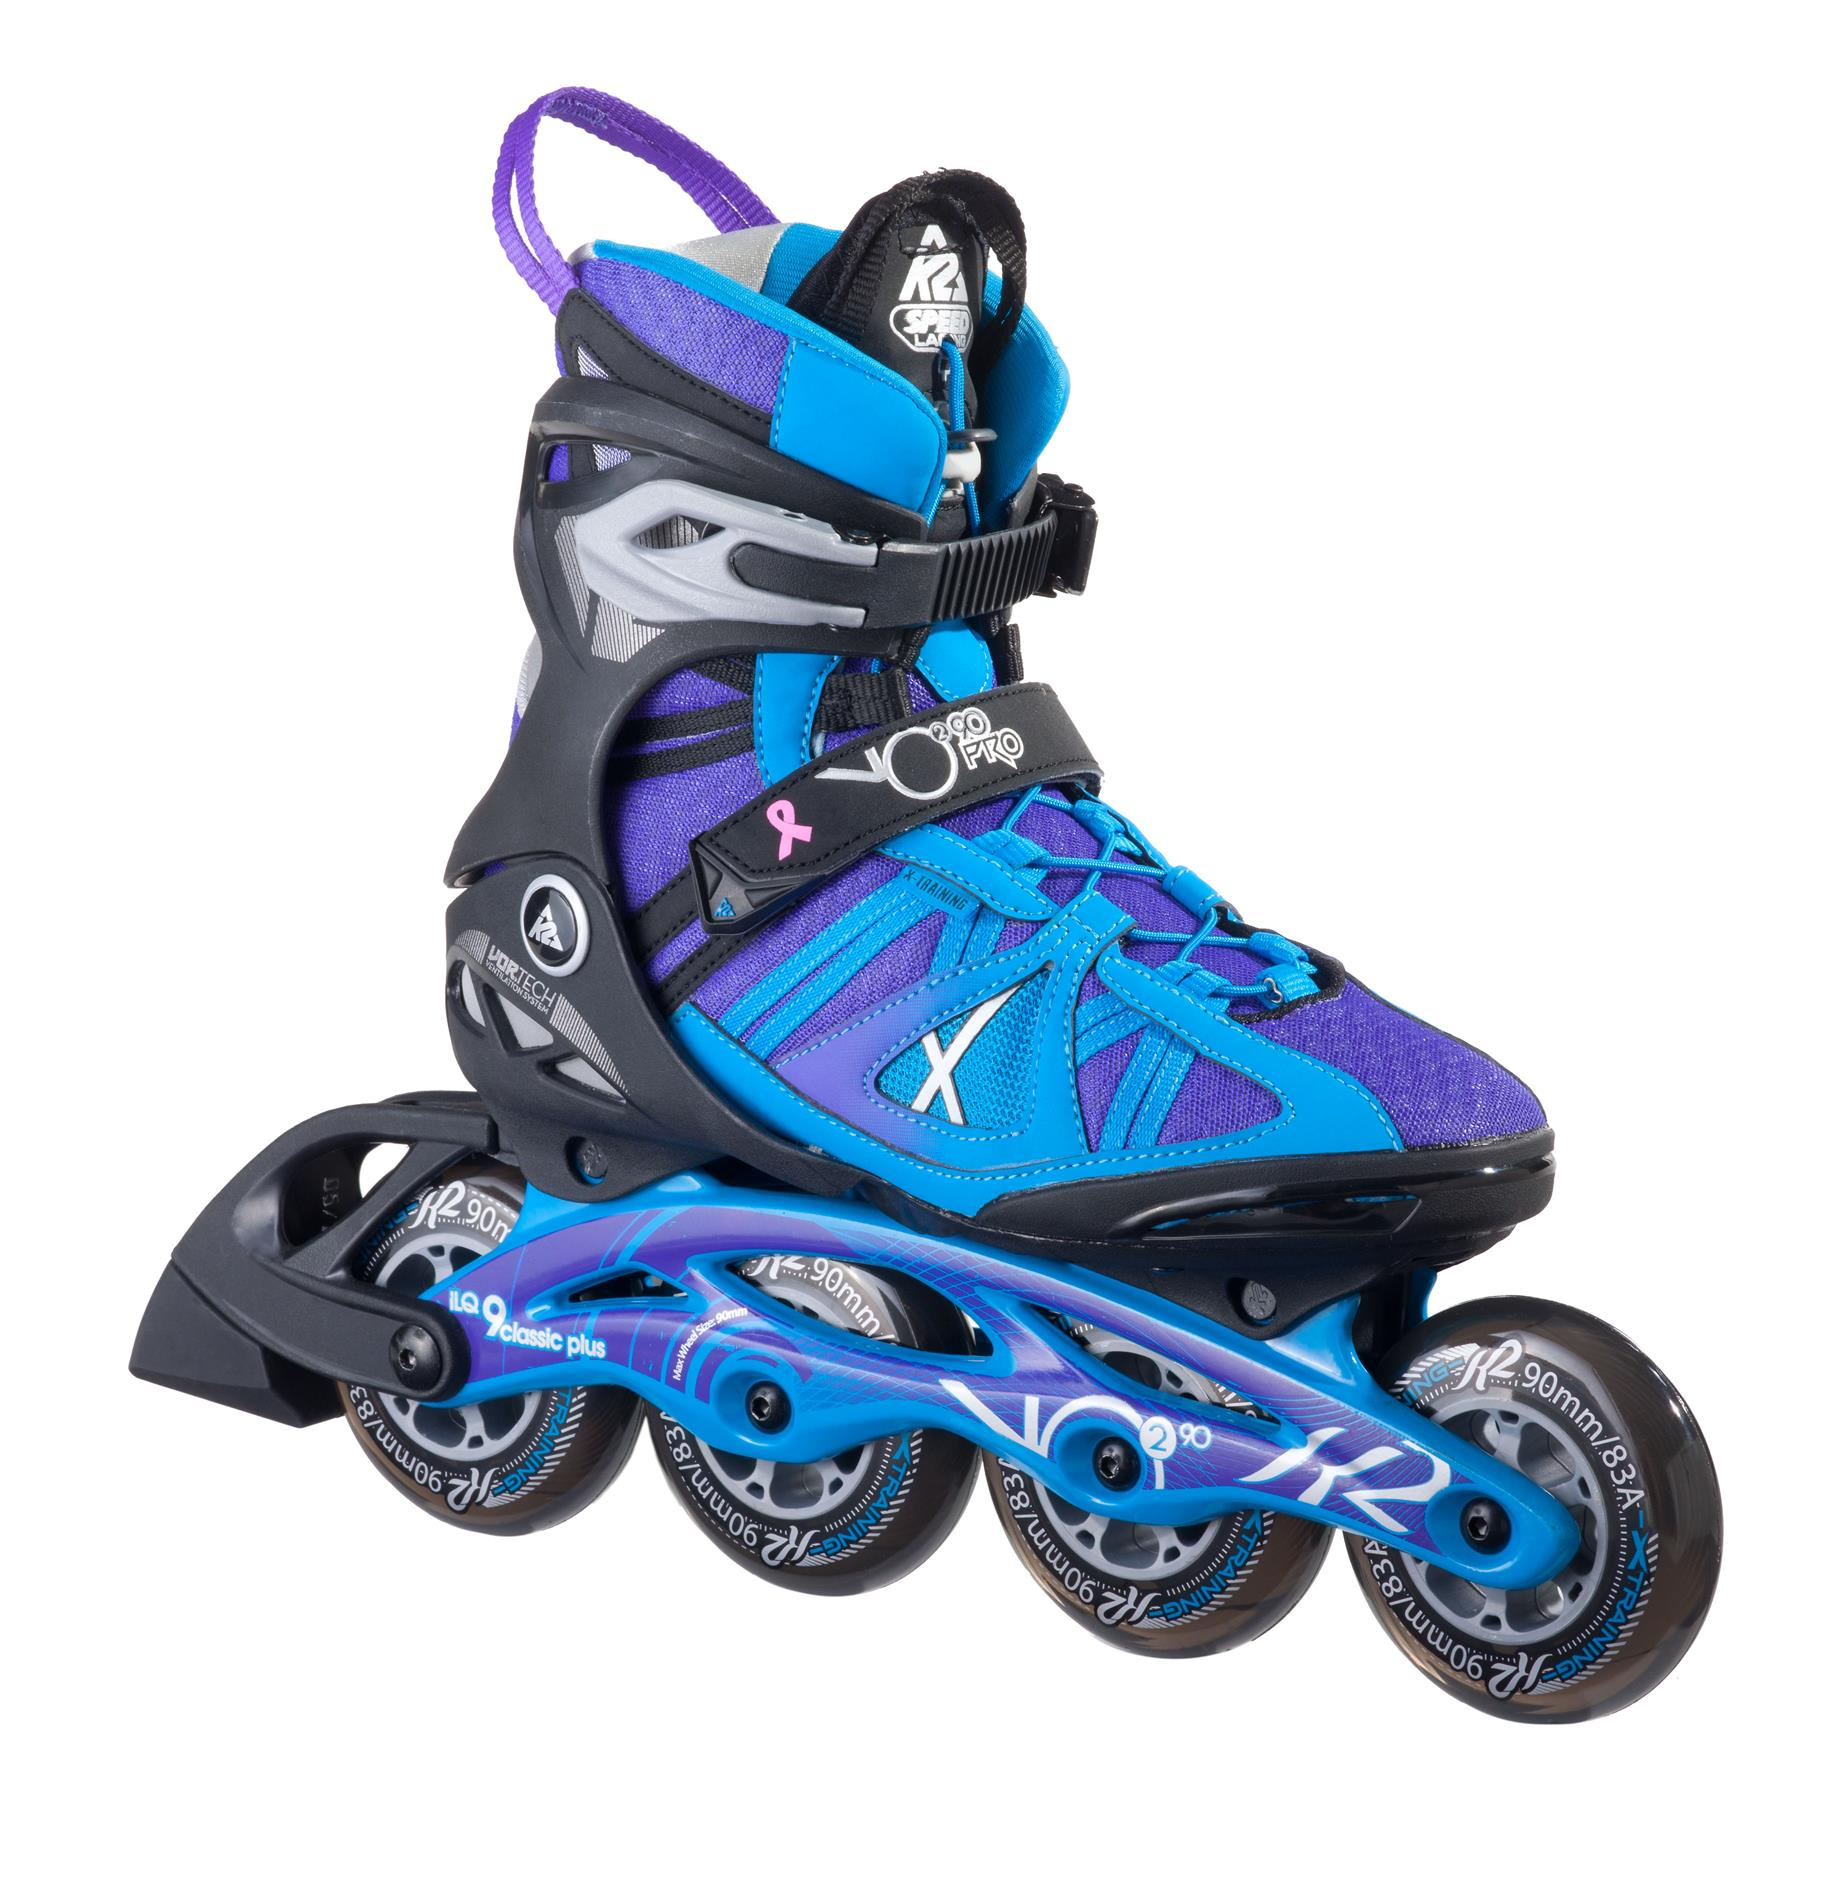 Roller skate shoes penang - K2 Vo2 90 Pro Womens Recreational Freestyle Inline Skate